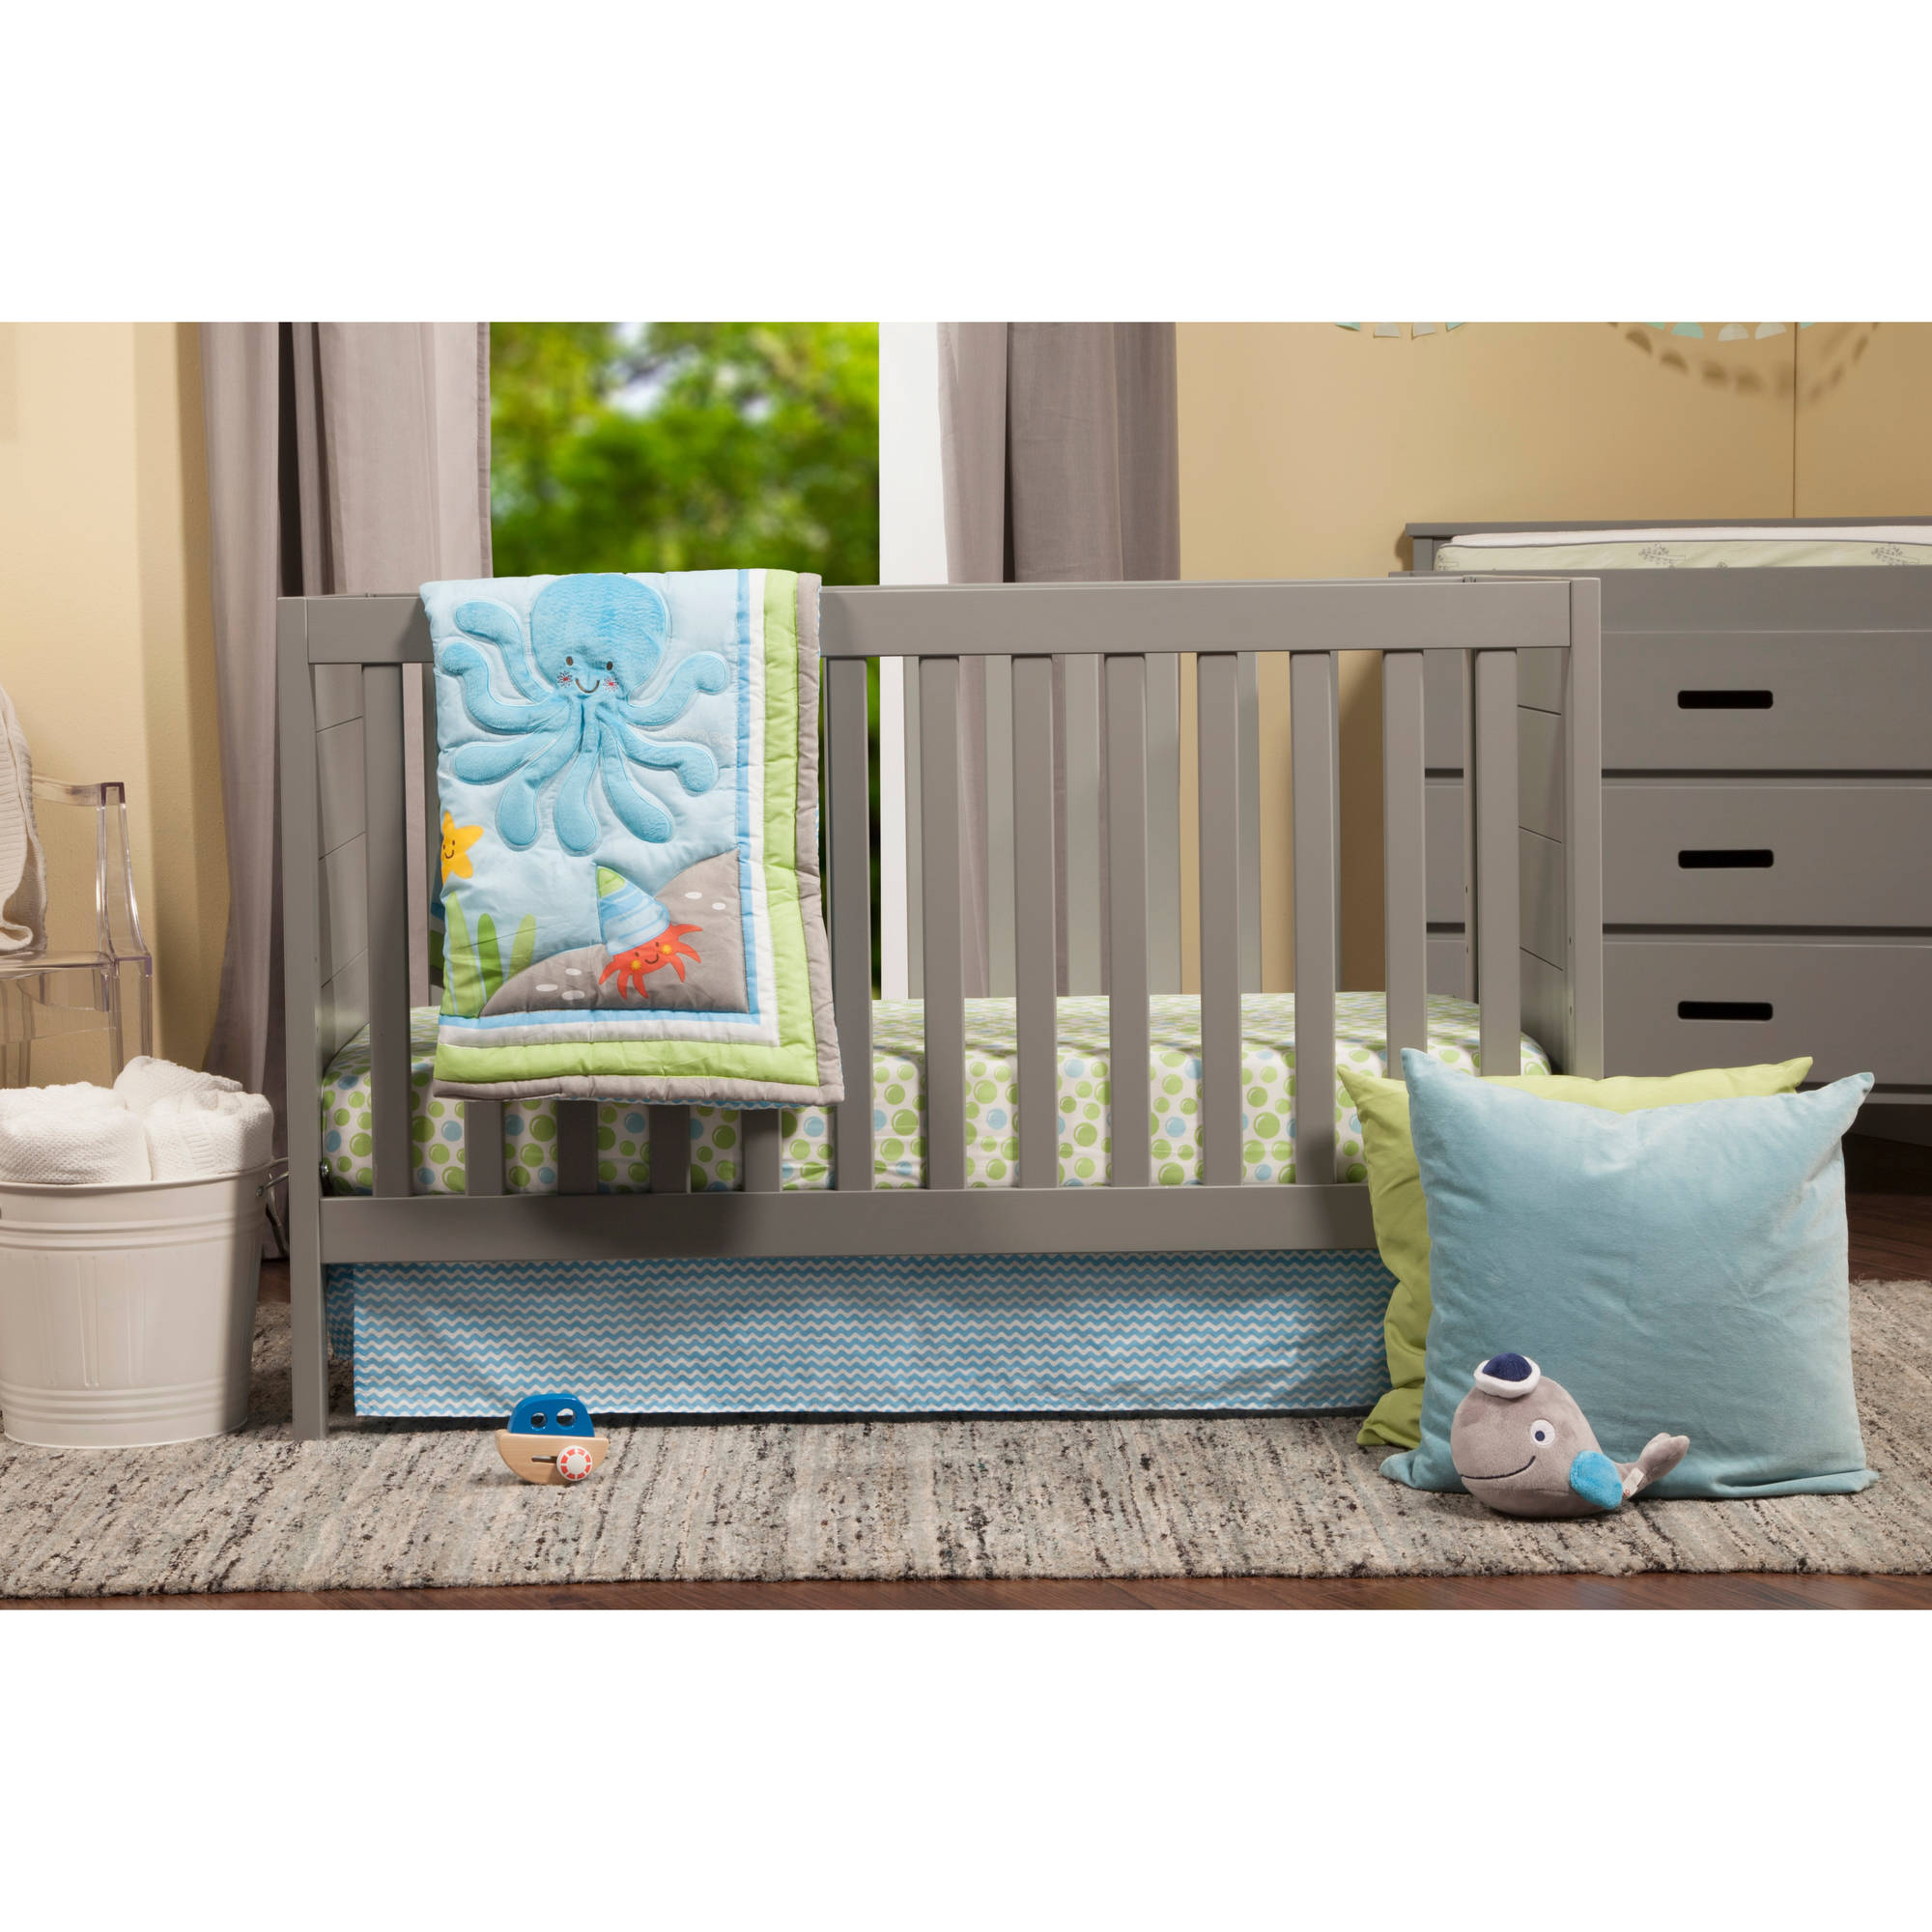 Baby Mod - Modena 3-in-1 Fixed Side Crib, Choose Your Finish